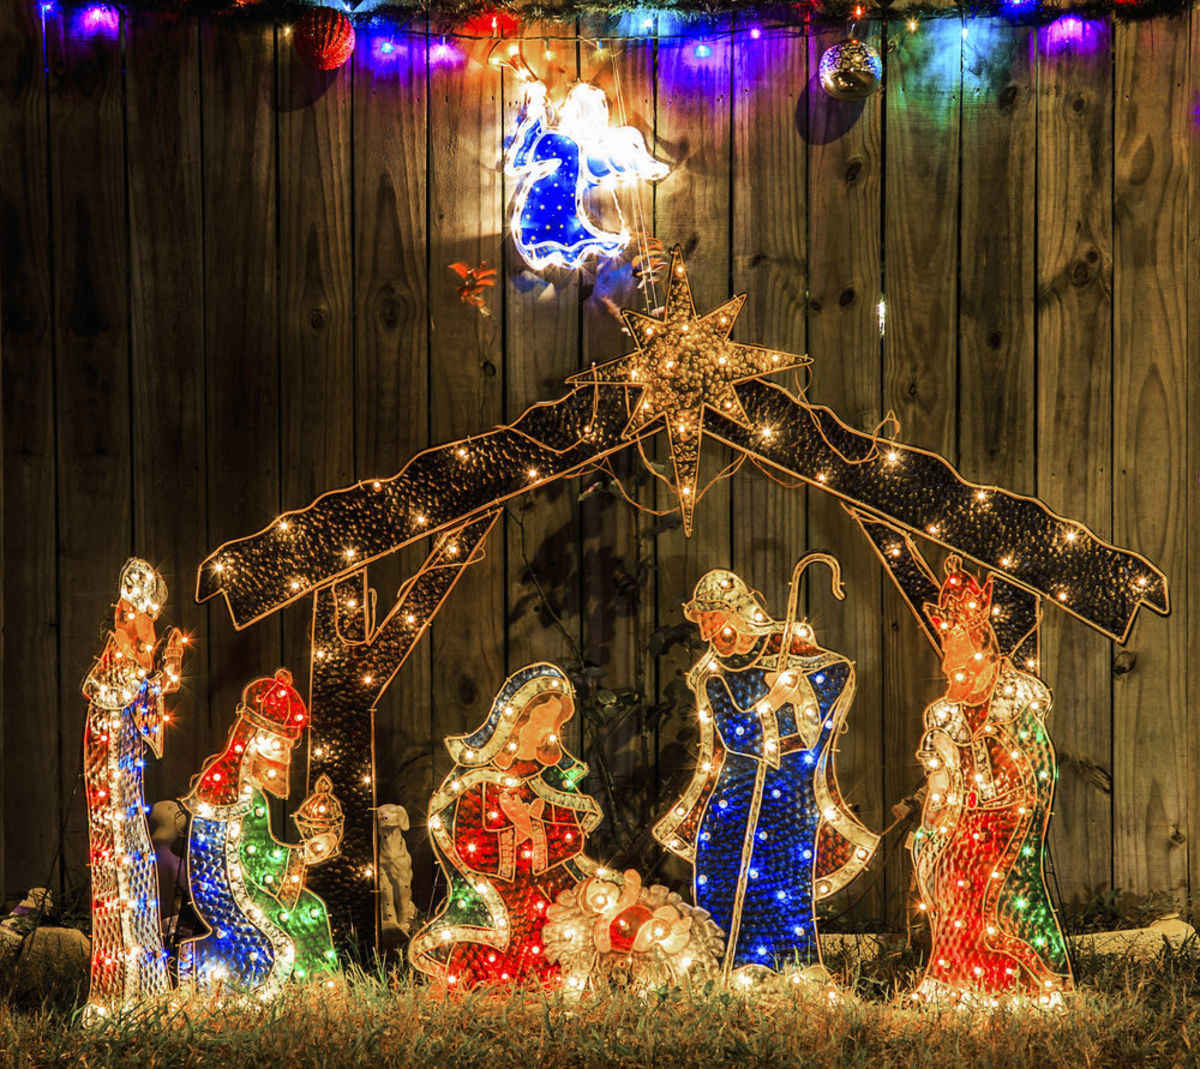 angelus news - When Should I Start Decorating For Christmas